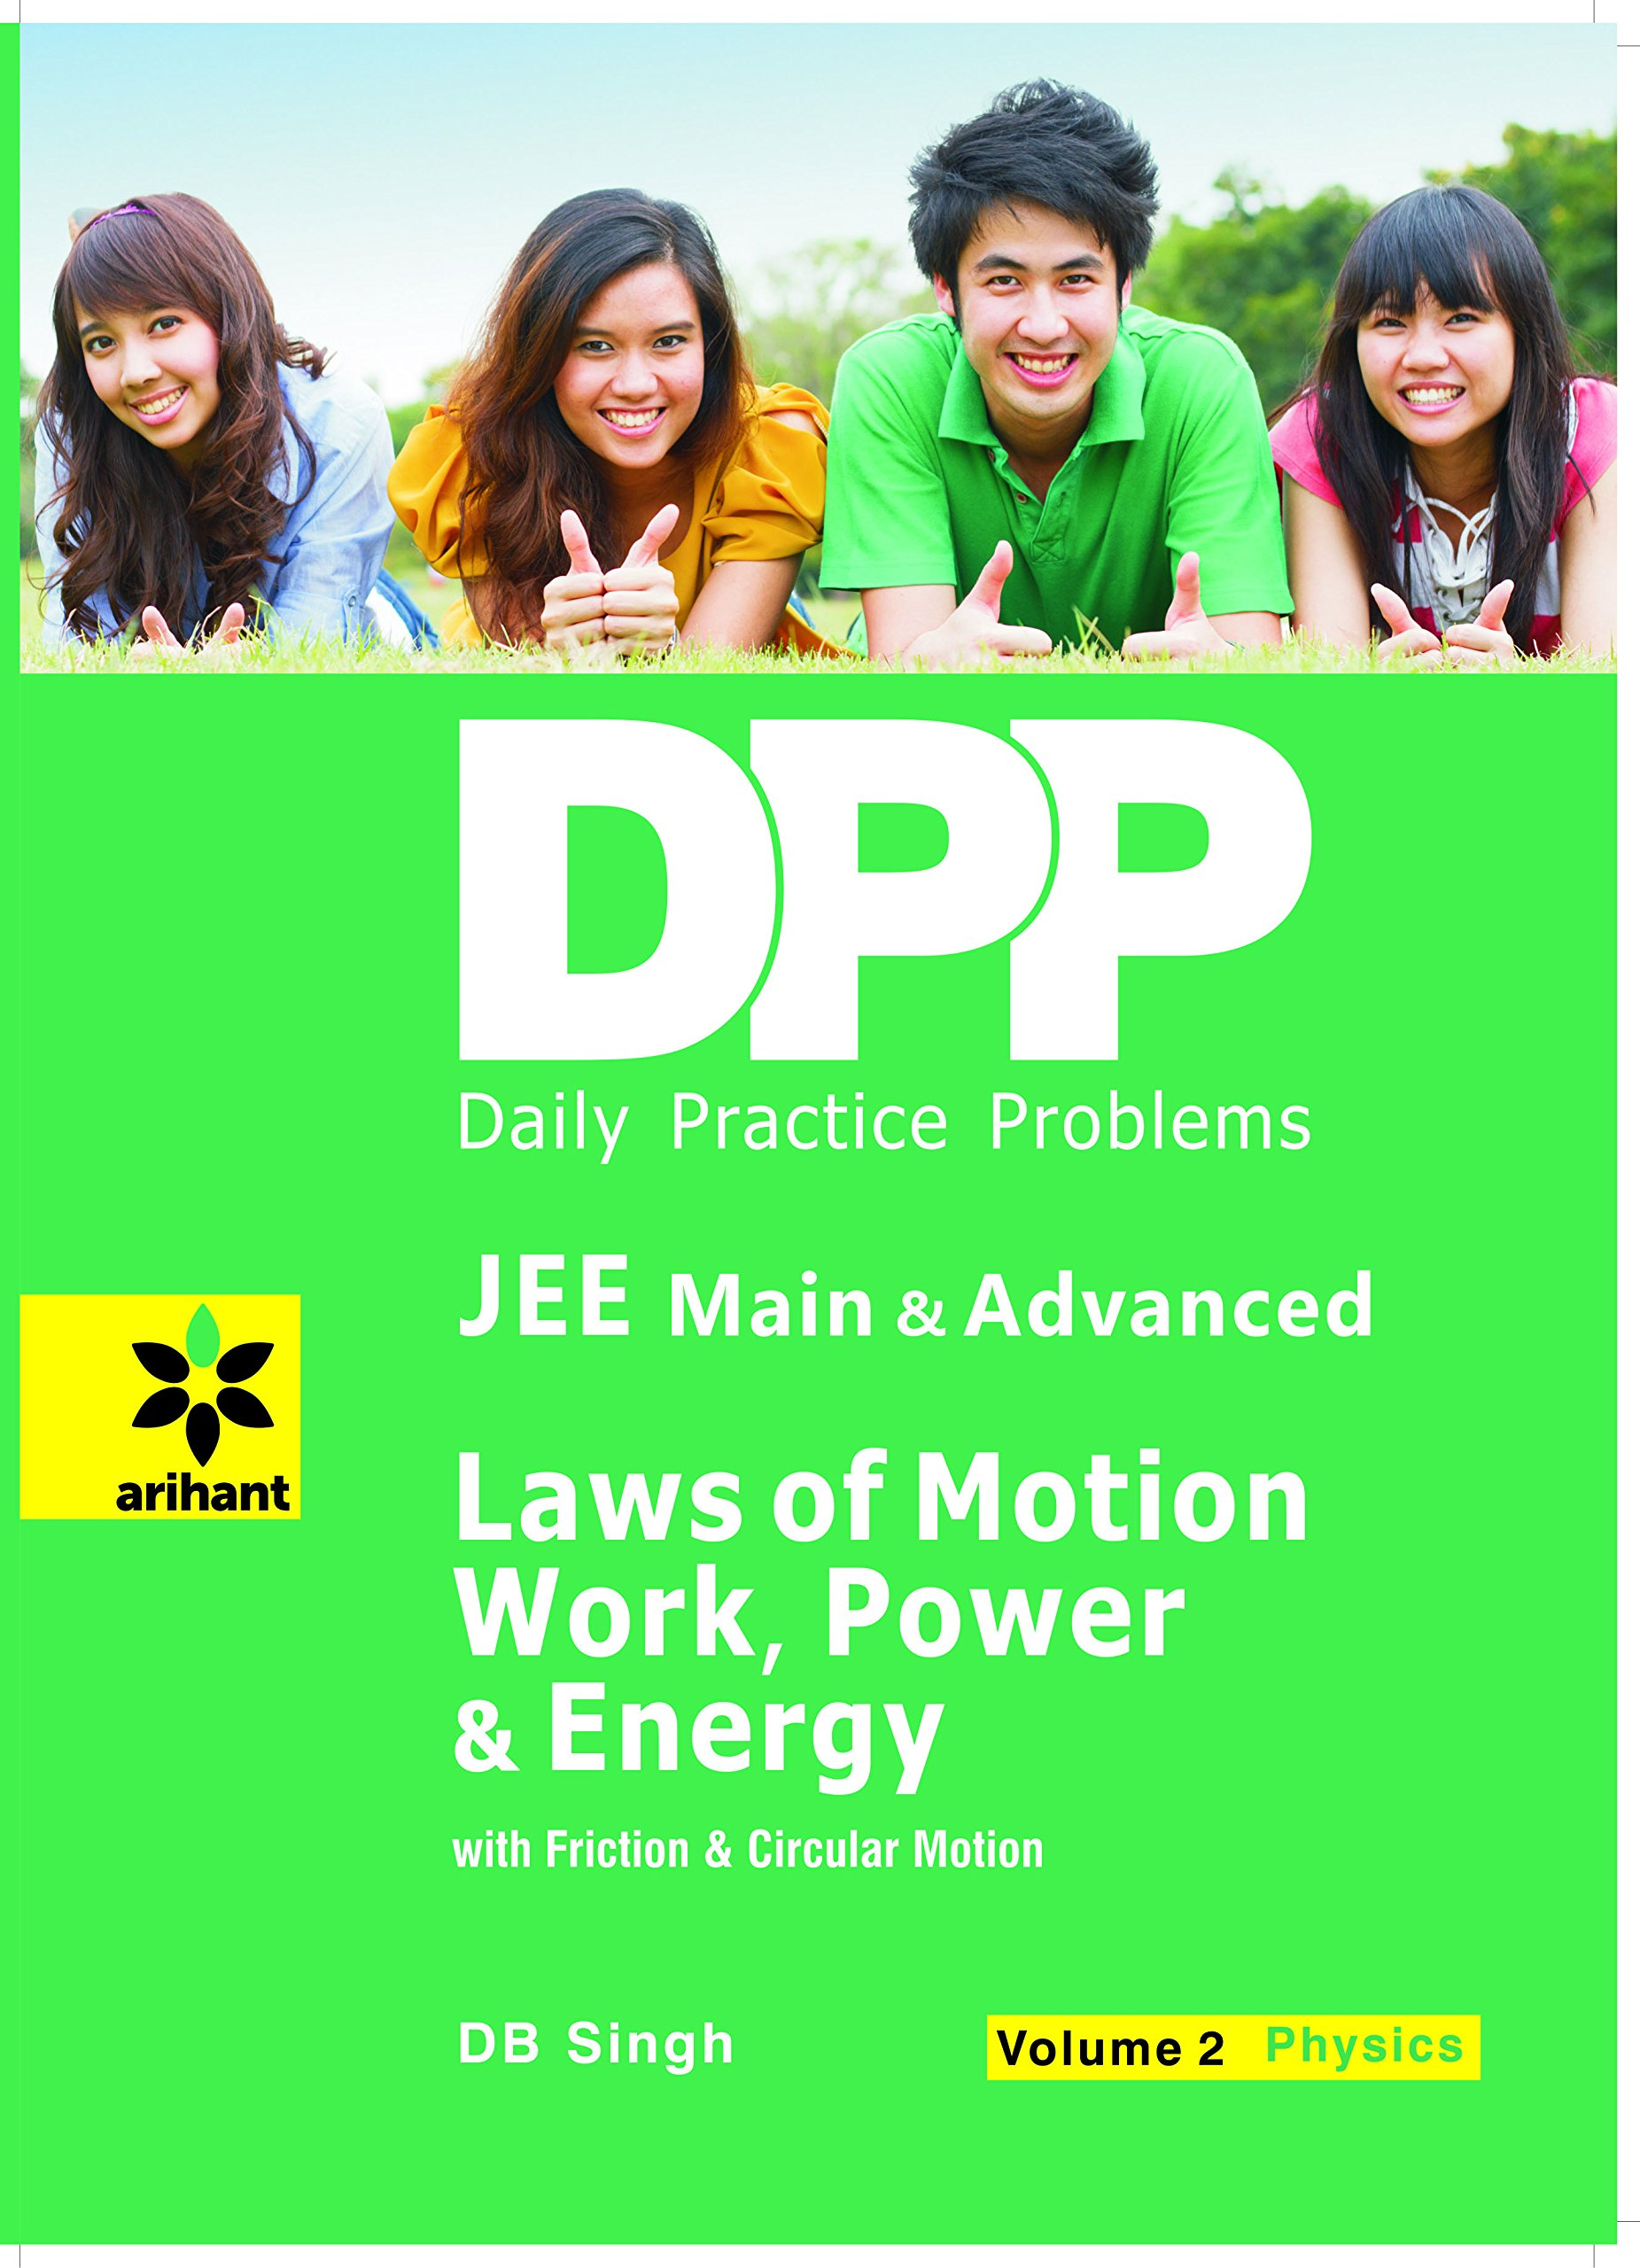 daily practice problems dpp for jee main advanced laws of daily practice problems dpp for jee main advanced laws of motion work power energy physics vol 2 in d b singh books